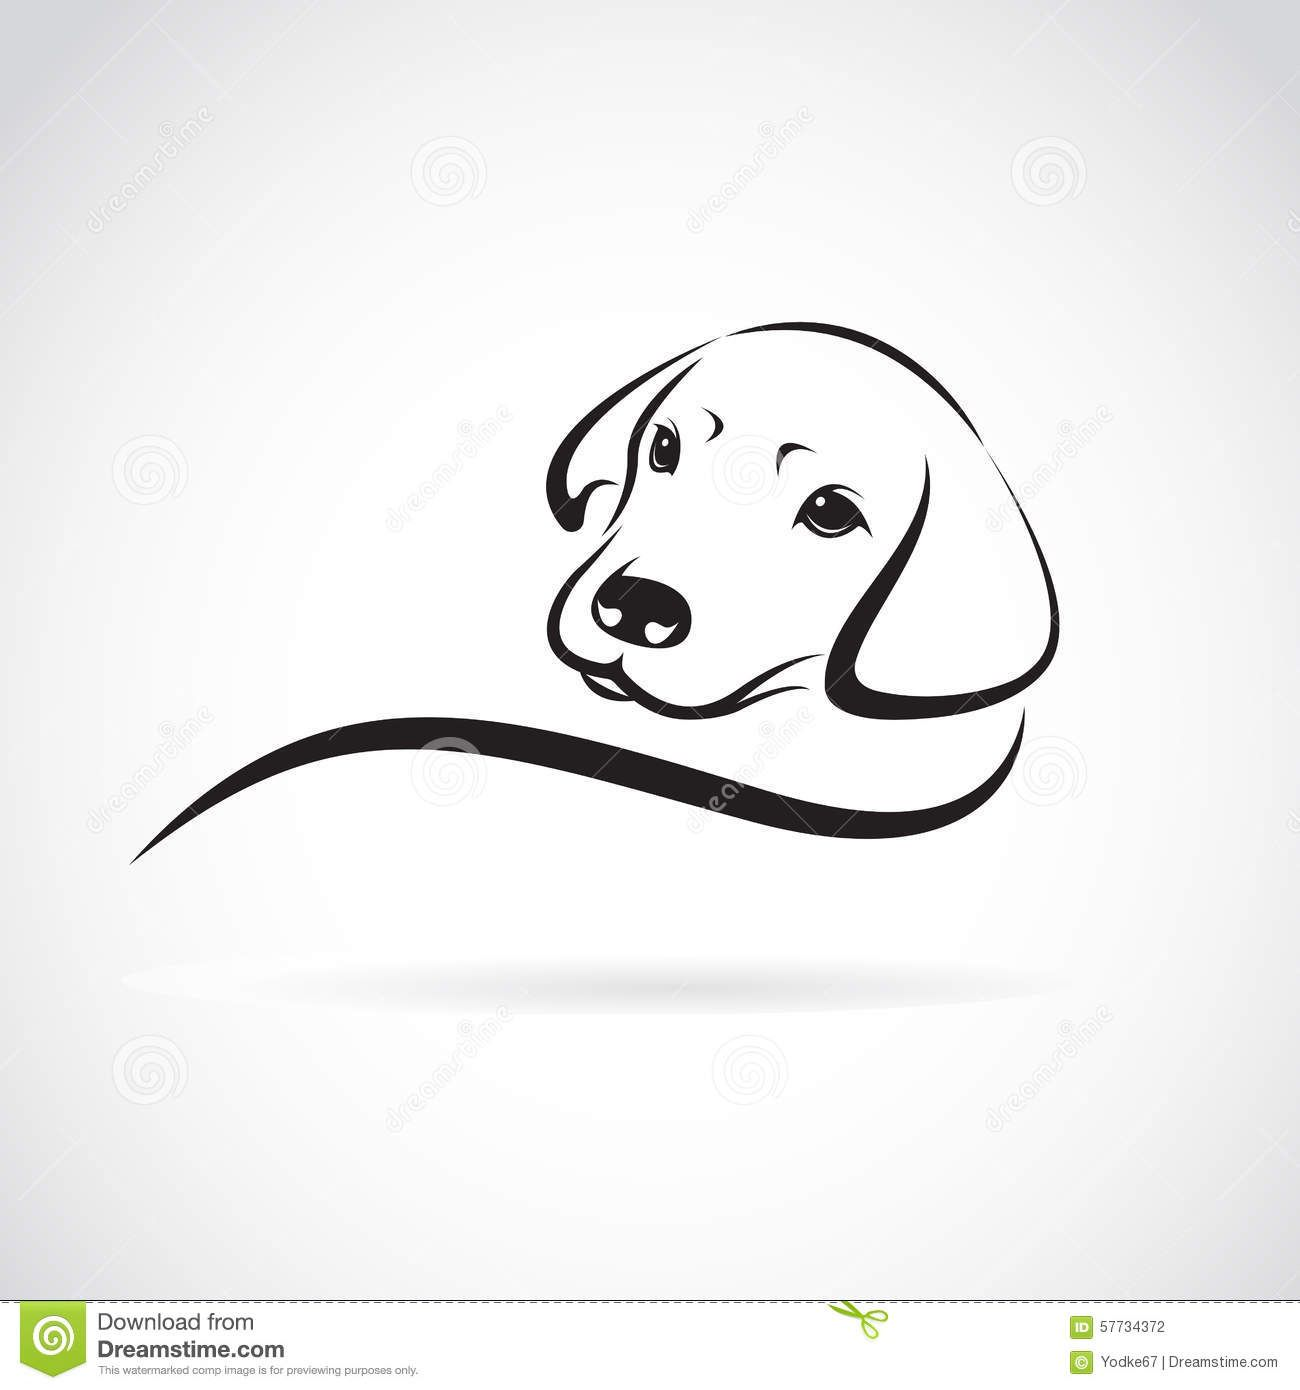 Vector Image Of An Dog Labrador Download From Over 53 Million High Quality Stock Photos Images Vectors S Hund Tattoo Ideen Hundezeichnung Hunde Silhouette